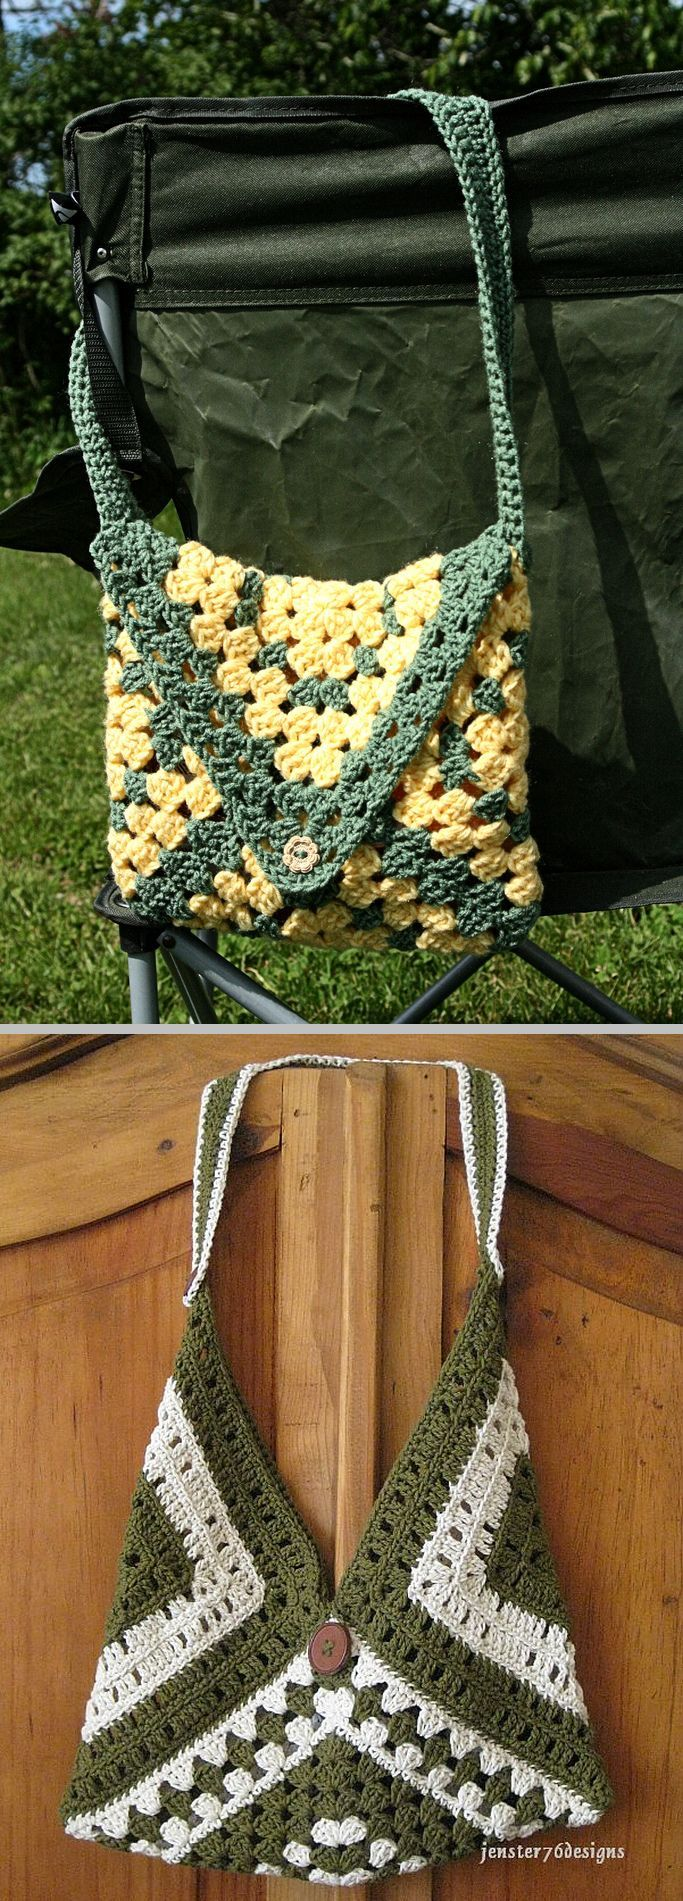 Get Your Granny On bag, free pattern by Valerie Whitten   . . . .   ღTrish W ~ http://www.pinterest.com/trishw/  . . . .   #crochet #purse #tote